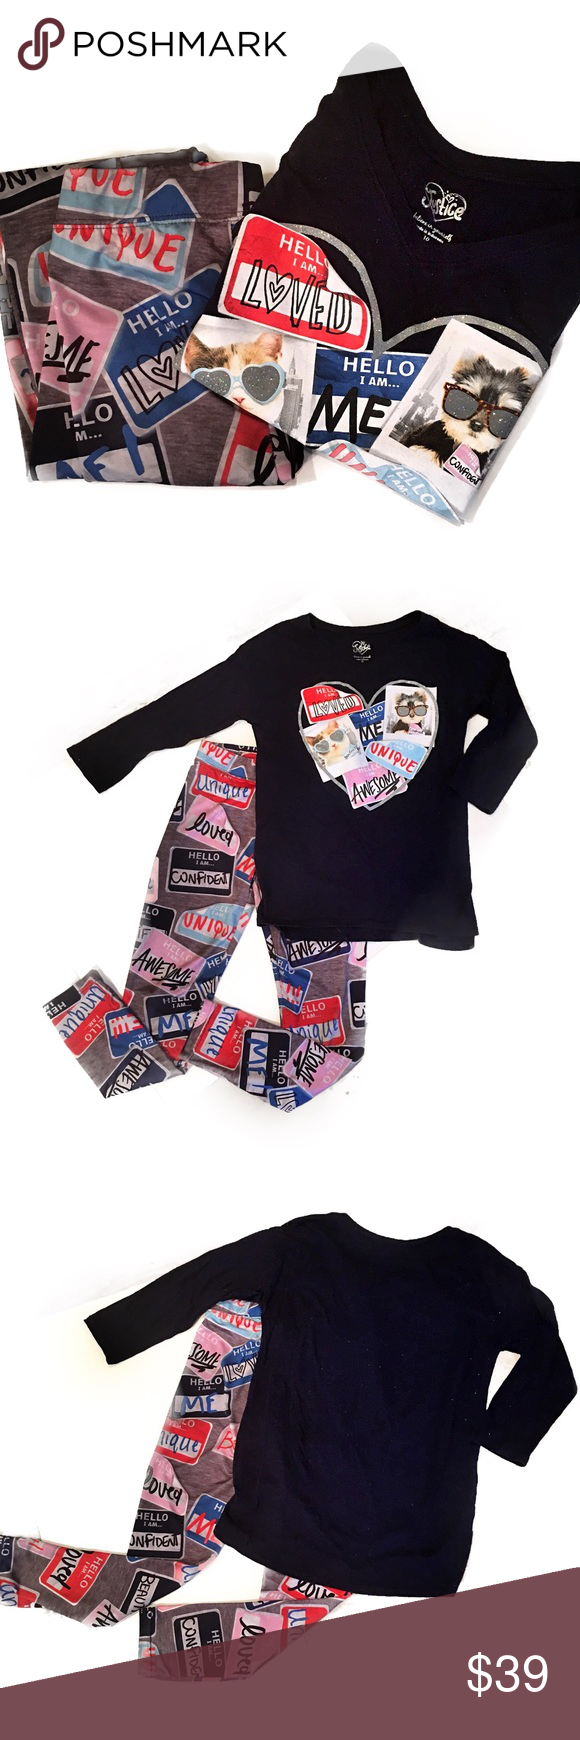 "Justice ""Hello I Am..."" Leggings/Shirt Set Sz 10 Justice ""Hello I Am..."" Leggings/Shirt Set Sz 10 - *Excellent Condition* Justice Matching Sets"